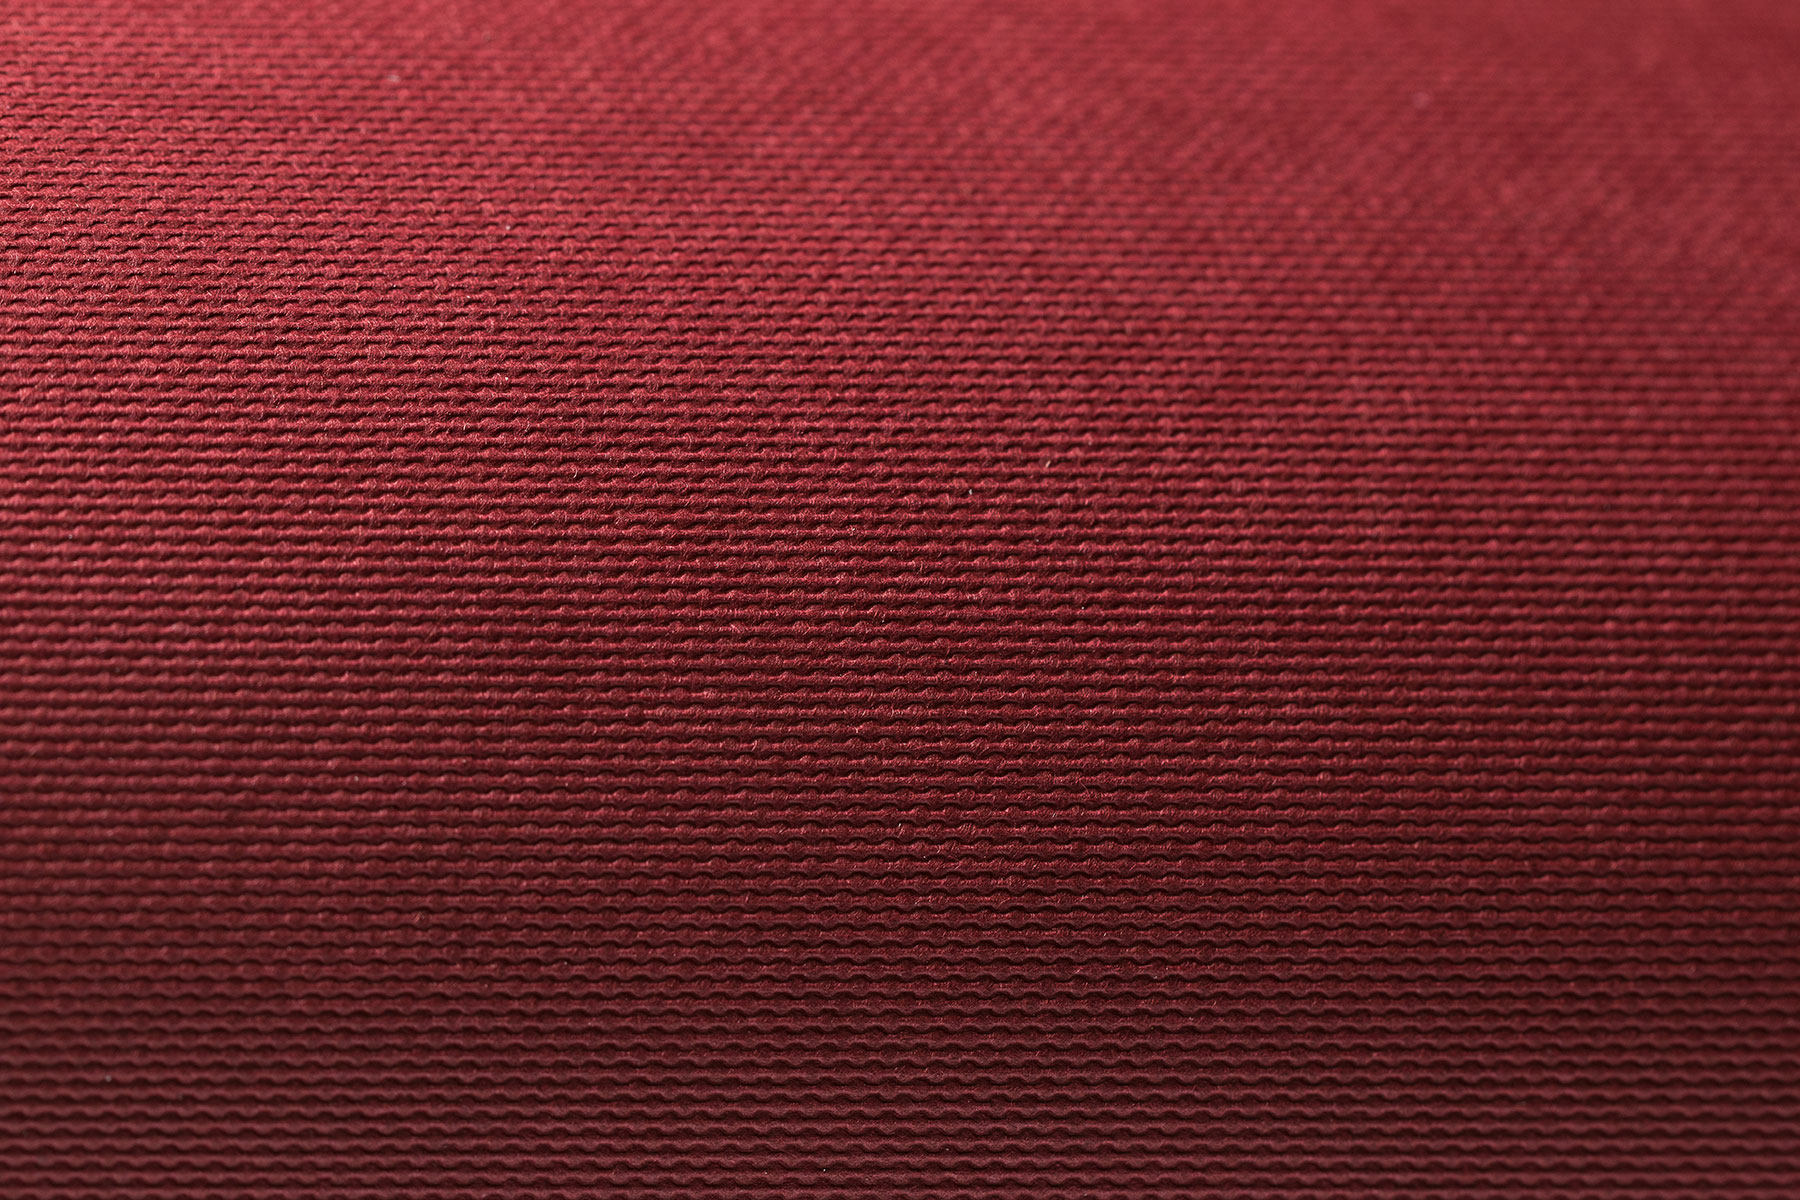 OOO «АртПапера» | TPG Fancy Emboss | Red Wine Buckram